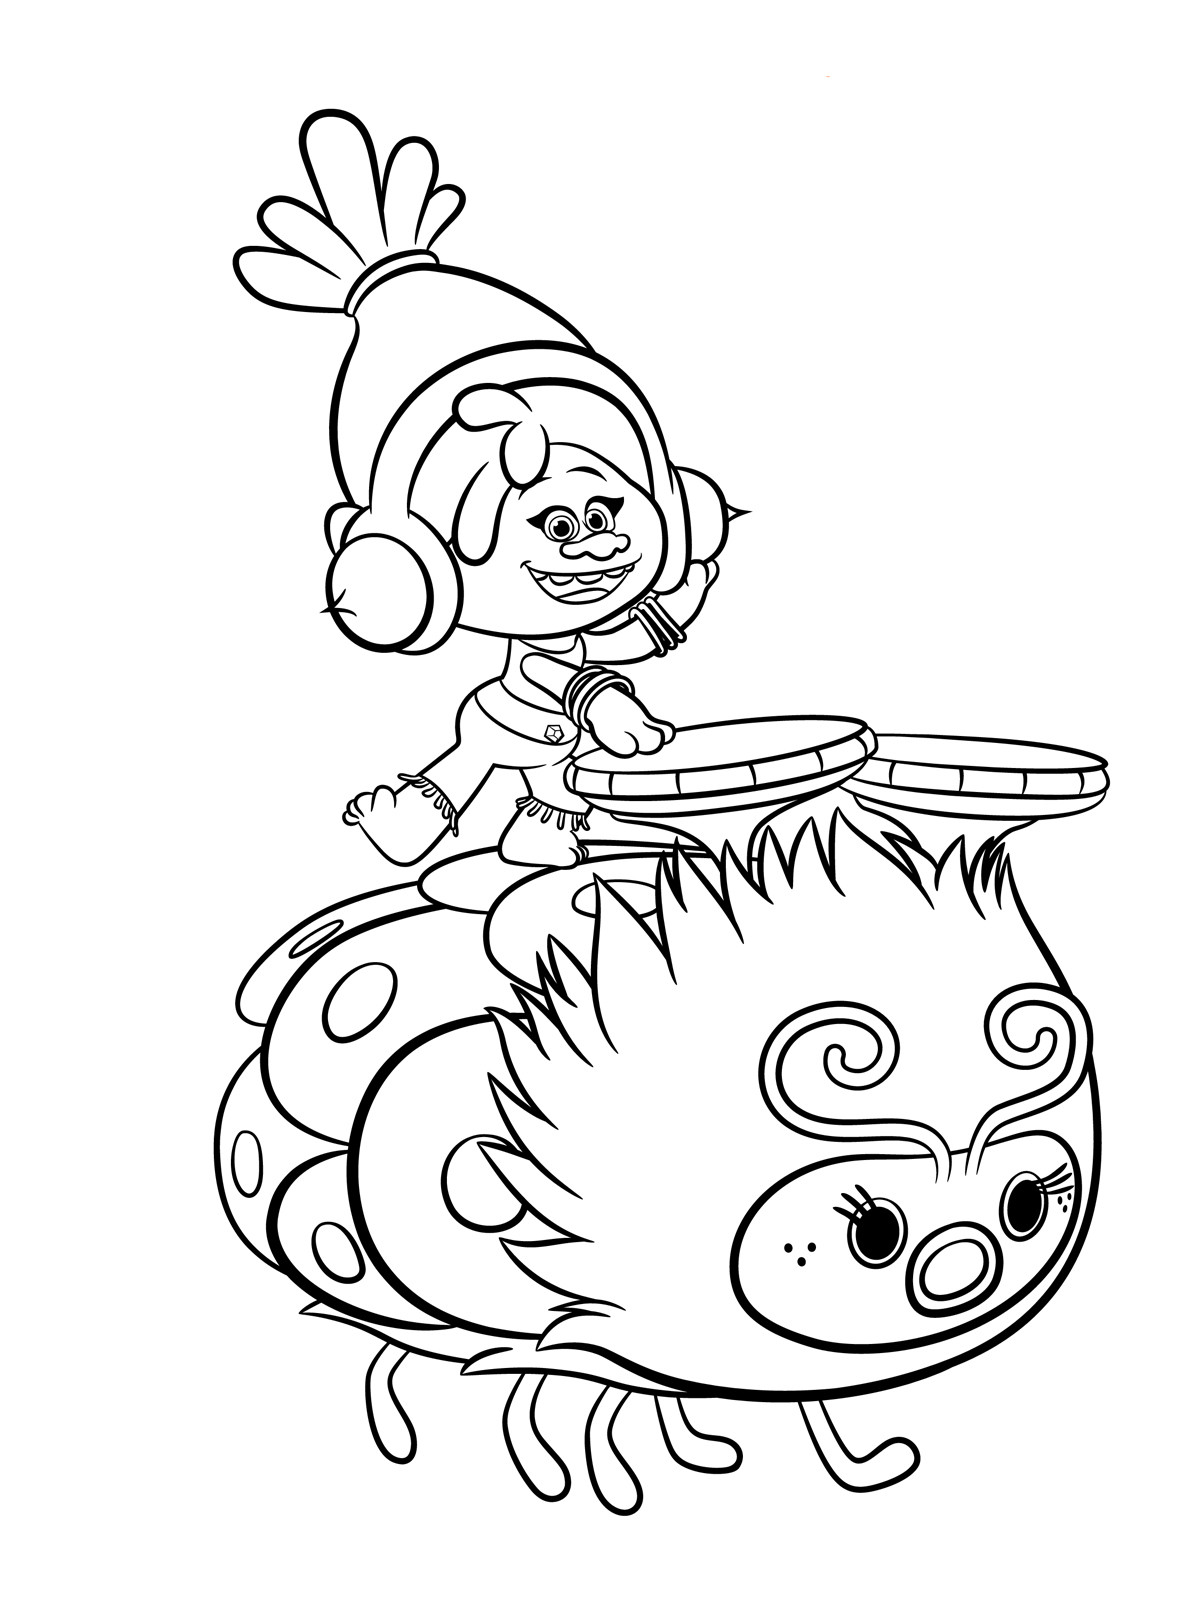 Best ideas about Trolls Free Printable Coloring Sheets . Save or Pin Trolls Coloring pages to and print for free Now.